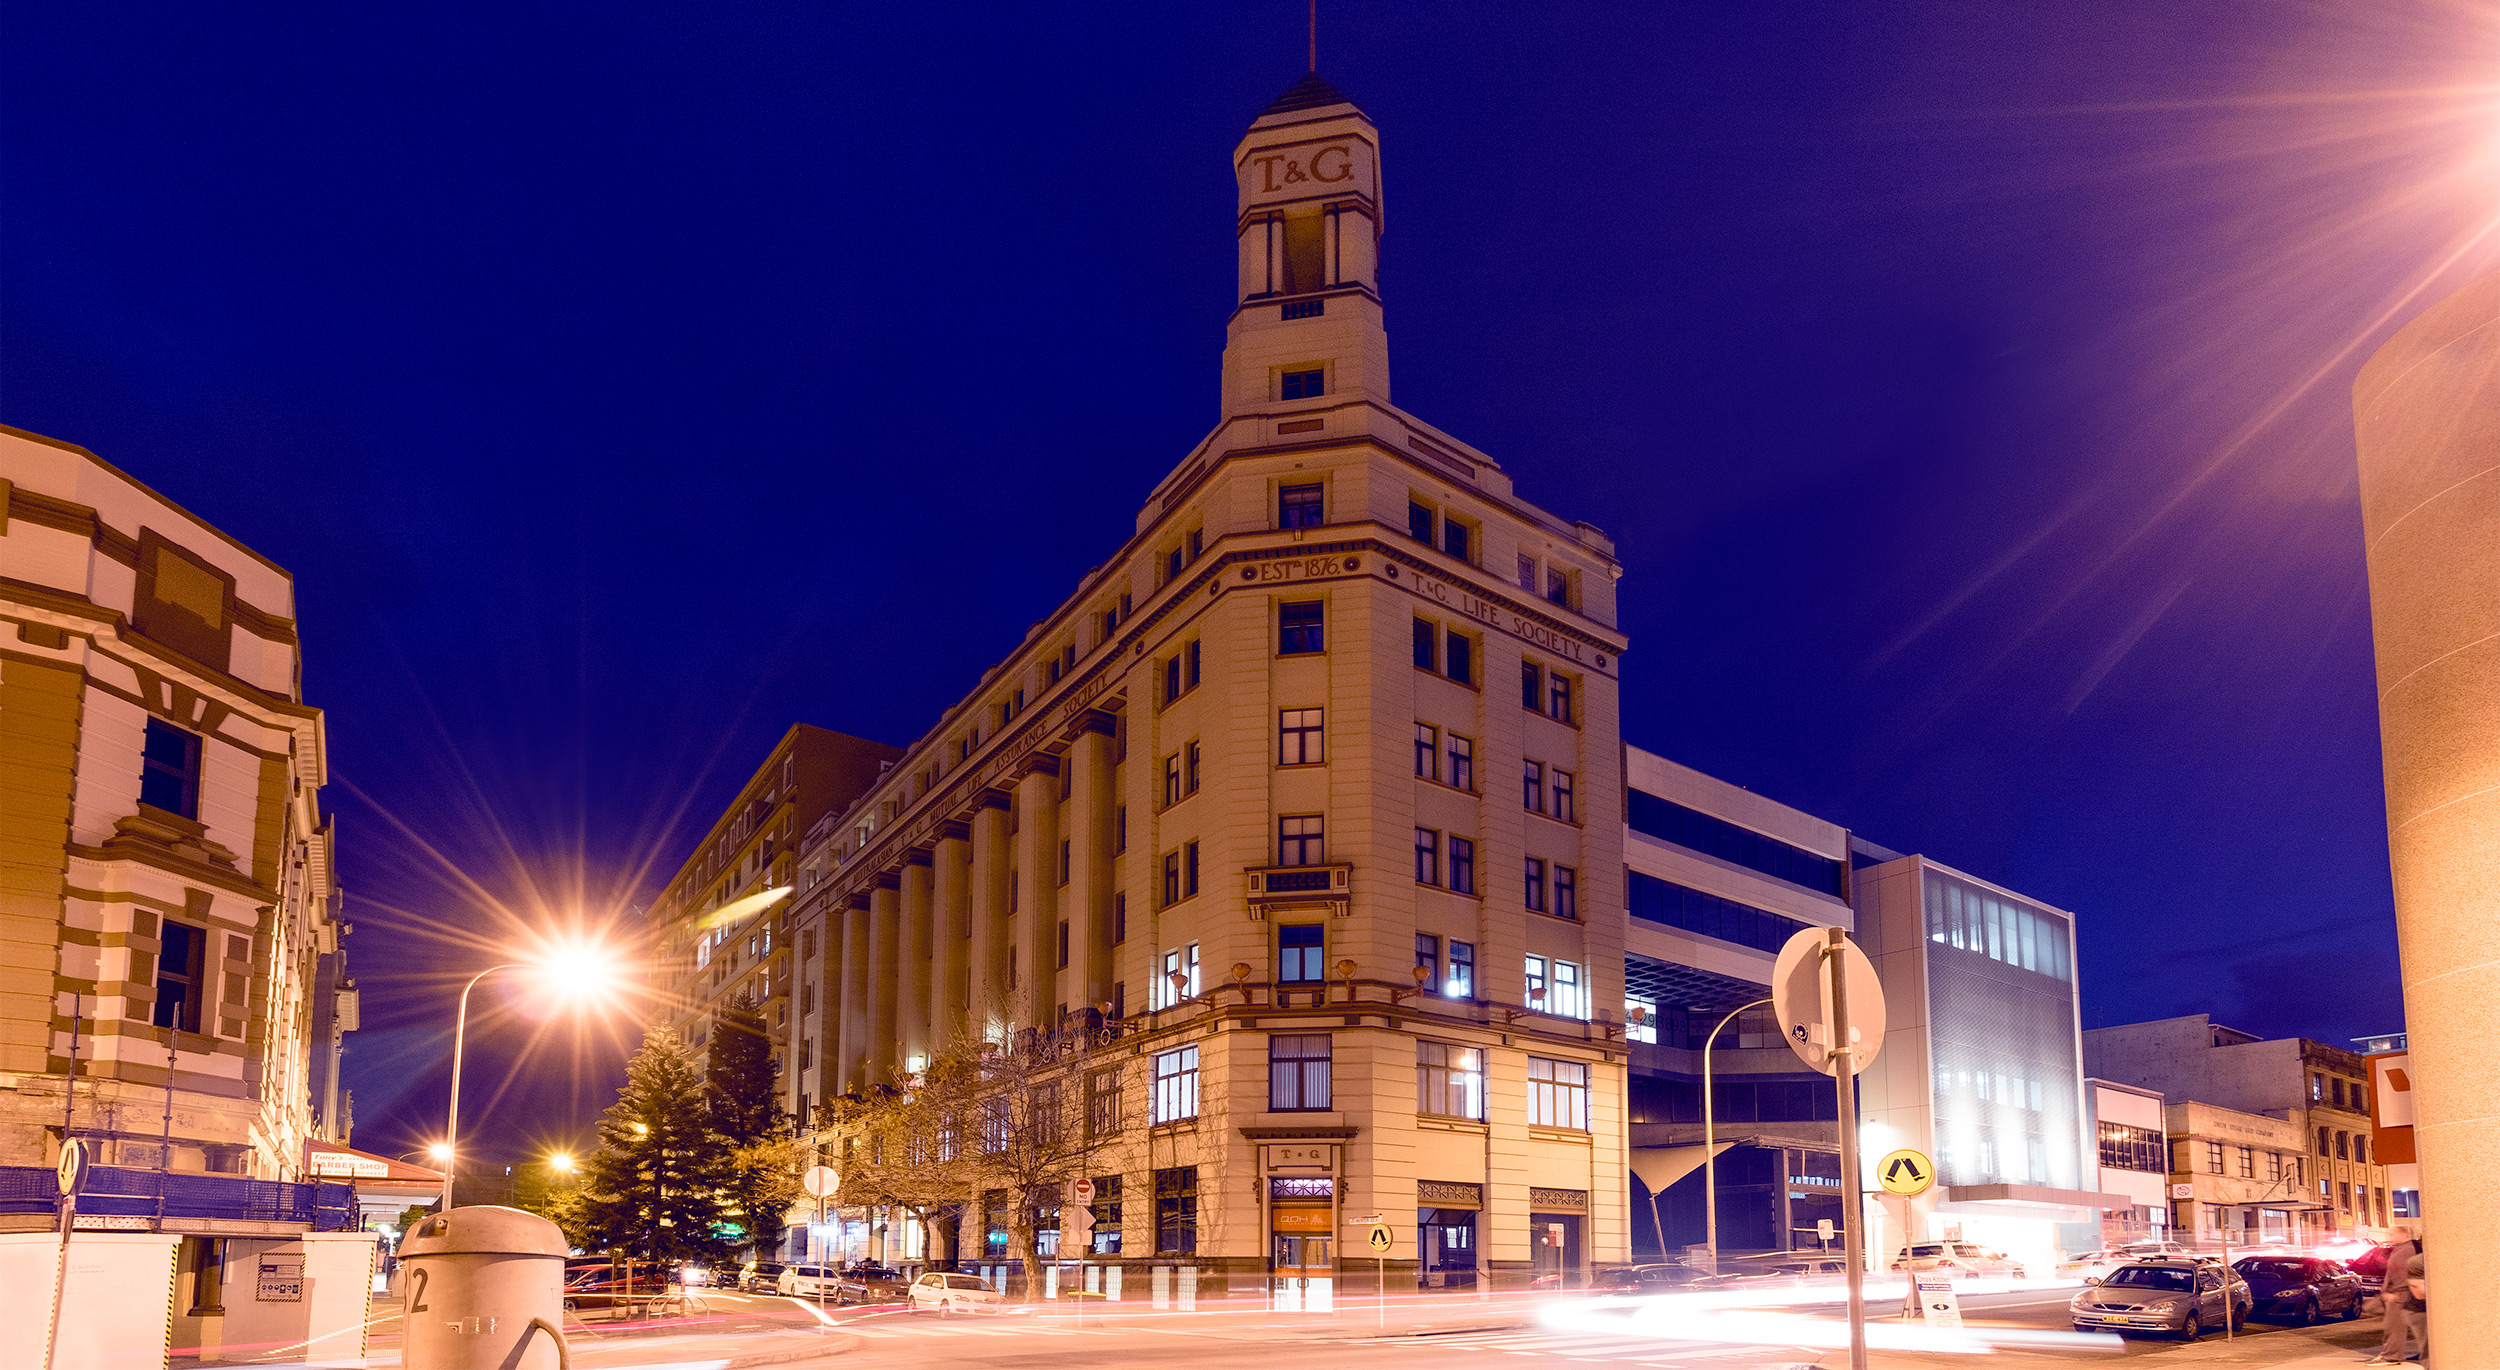 T&G Building, Newcastle